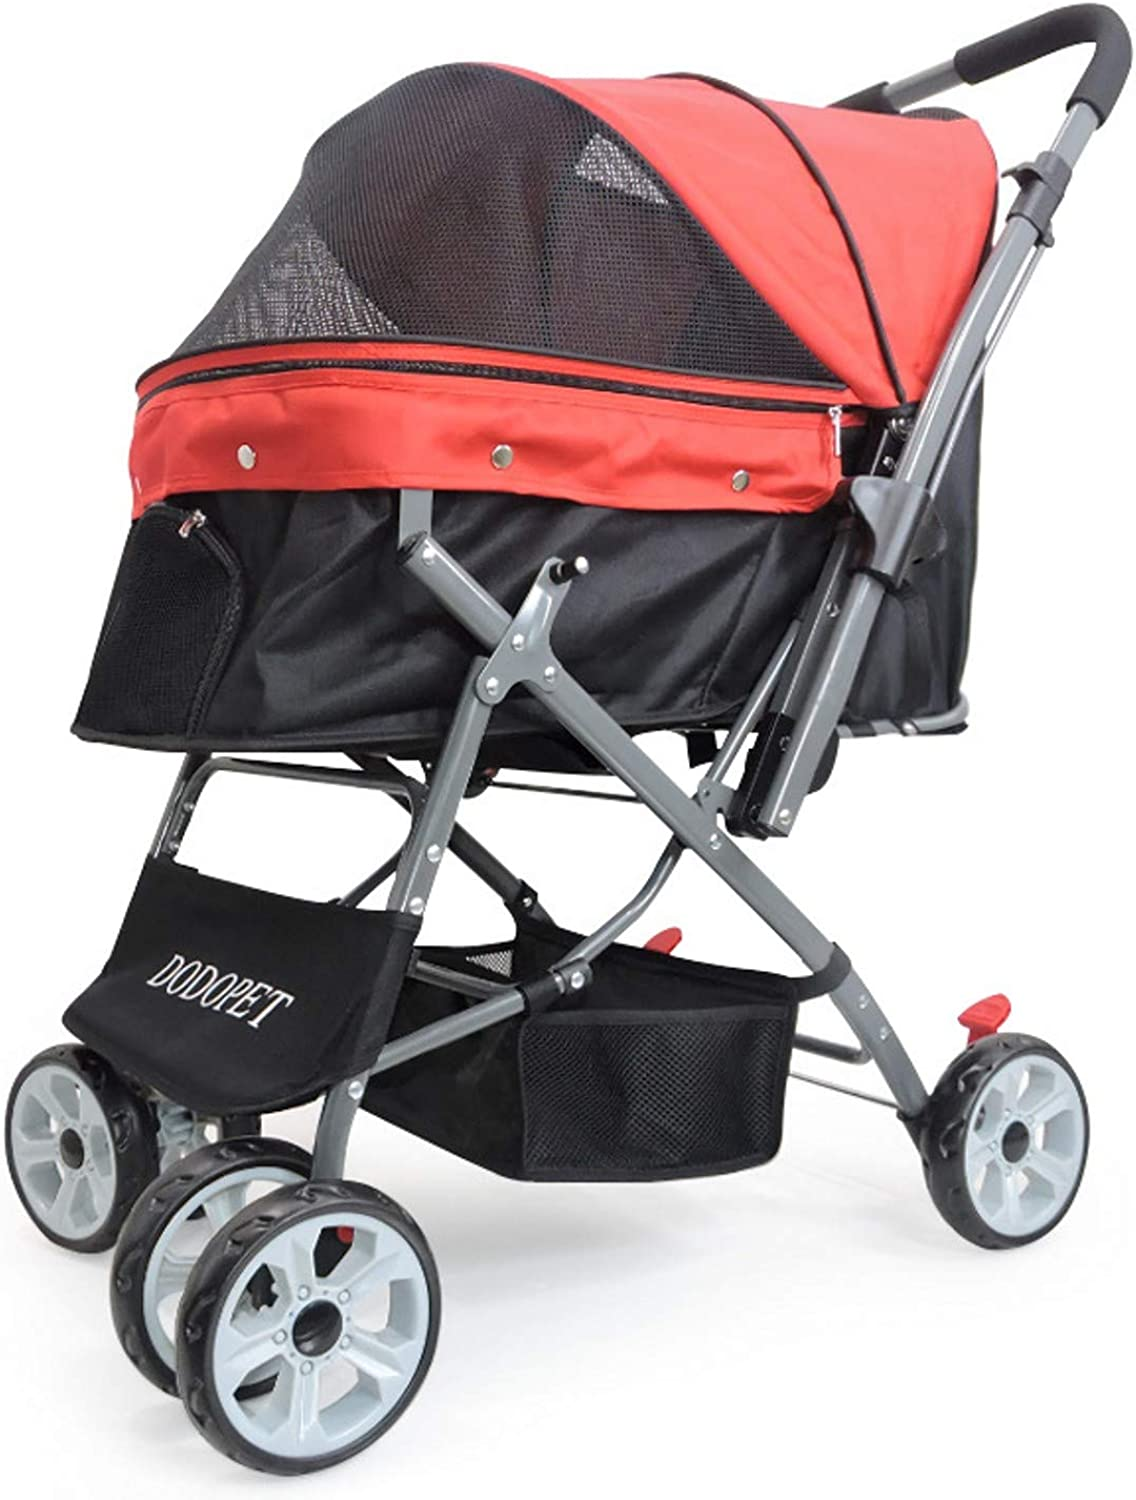 JKL Small Medium Pet Travel Stroller Cat Dog Pushchair Trolley Puppy Jogger Carrier 4 Wheels (color   RED)